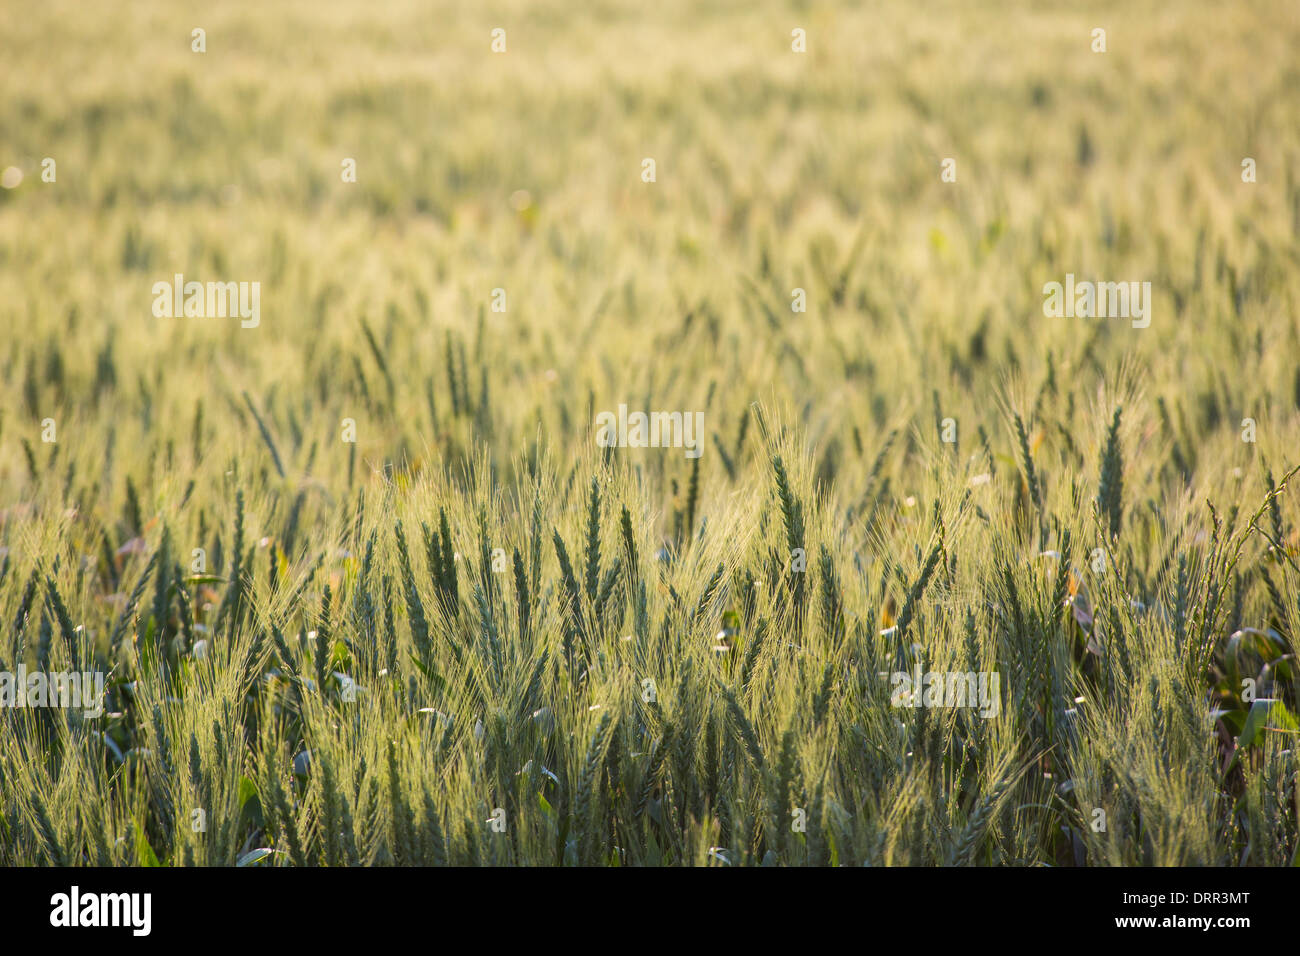 Fields of wheat in warm afternoon light, growing near Griffith, NSW, Australia Stock Photo